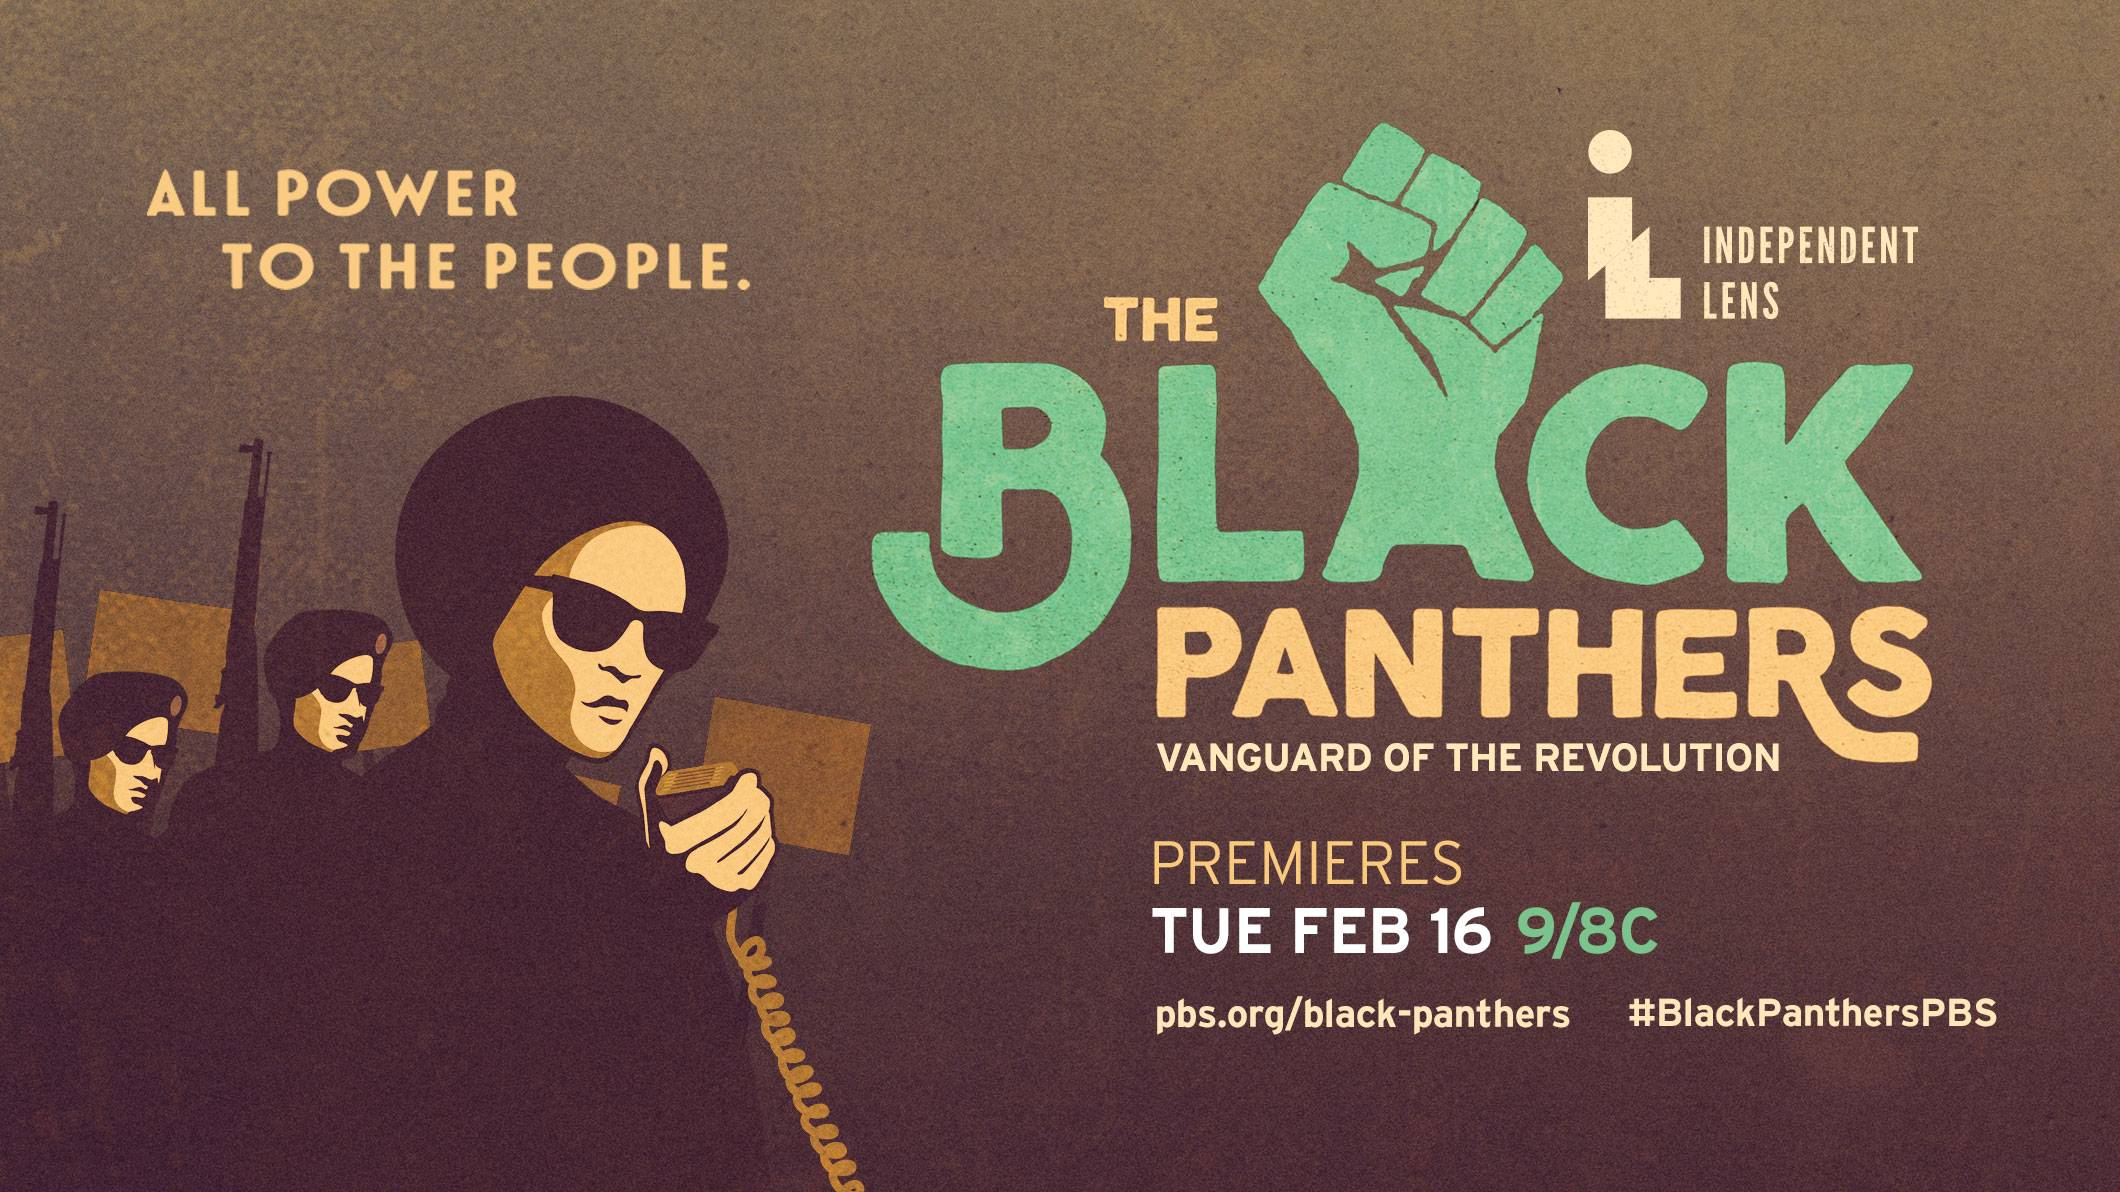 black panther party today